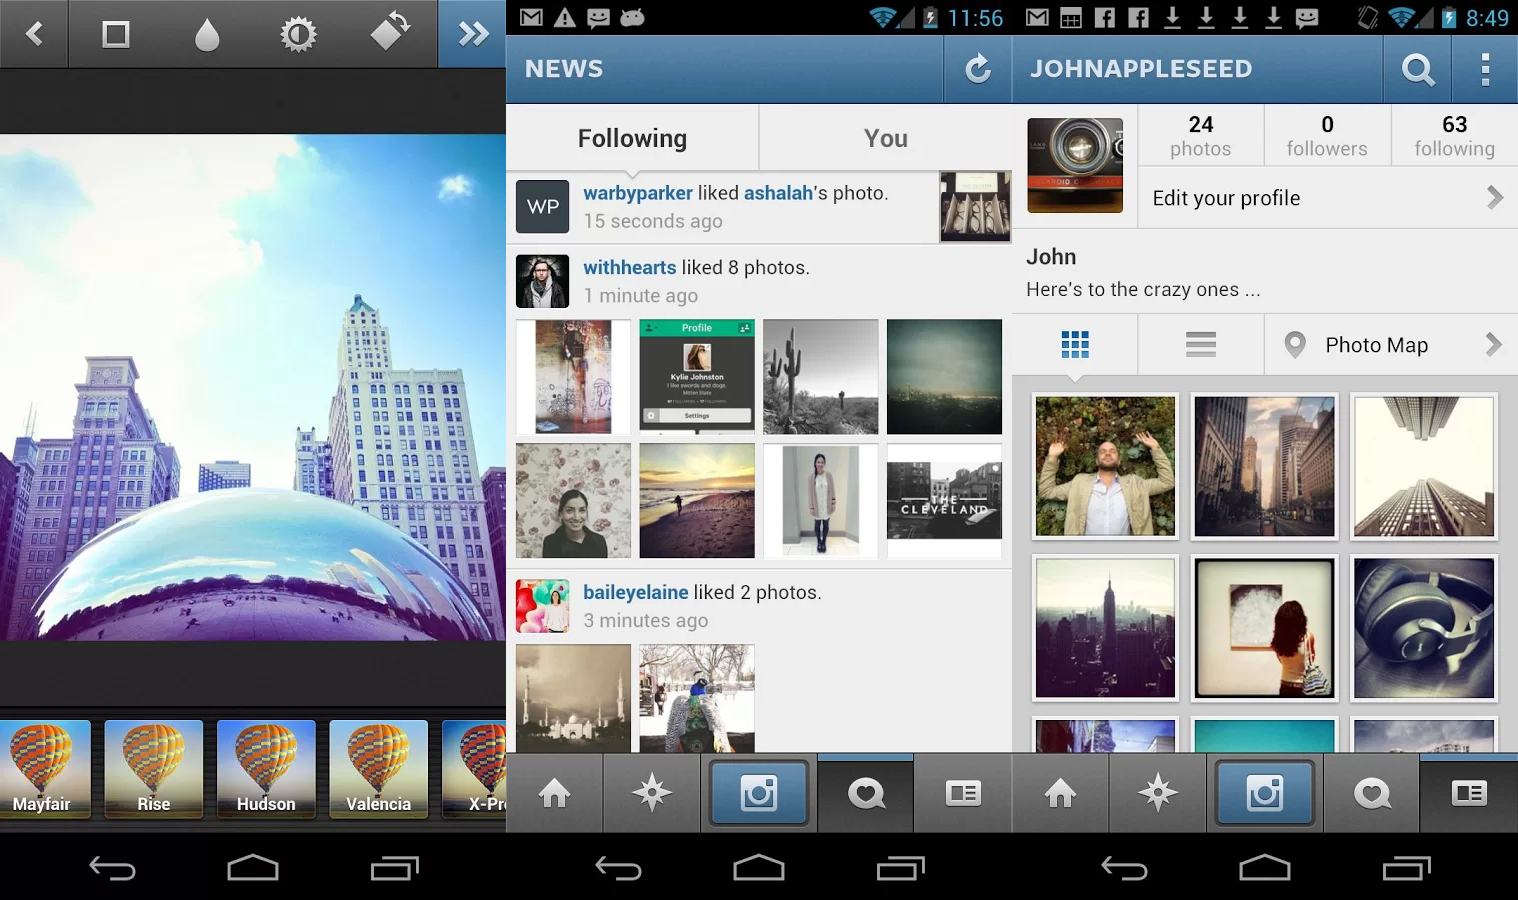 Instagram Gets Video Controls, Android Gets Photo